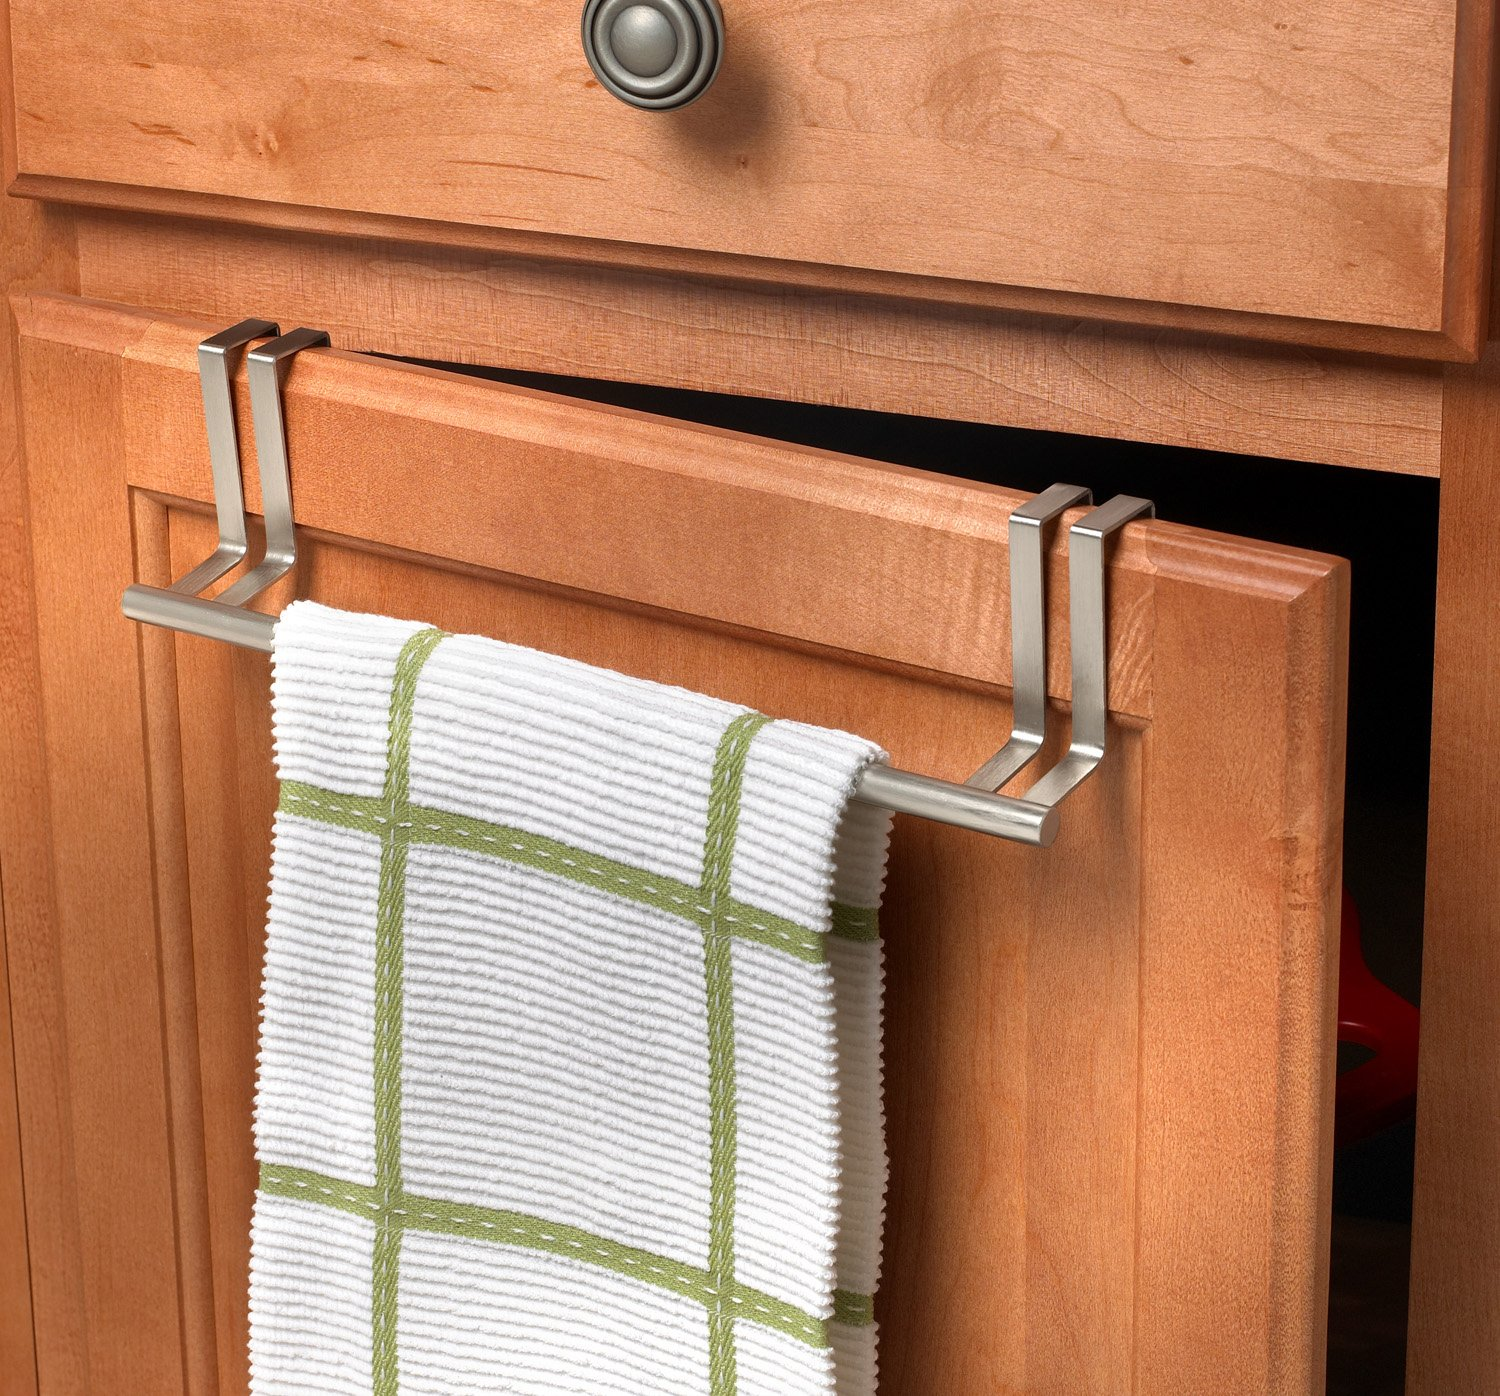 Uncategorized Dish Towel Rack amazon com spectrum diversified over the door towel bar brushed nickel home kitchen